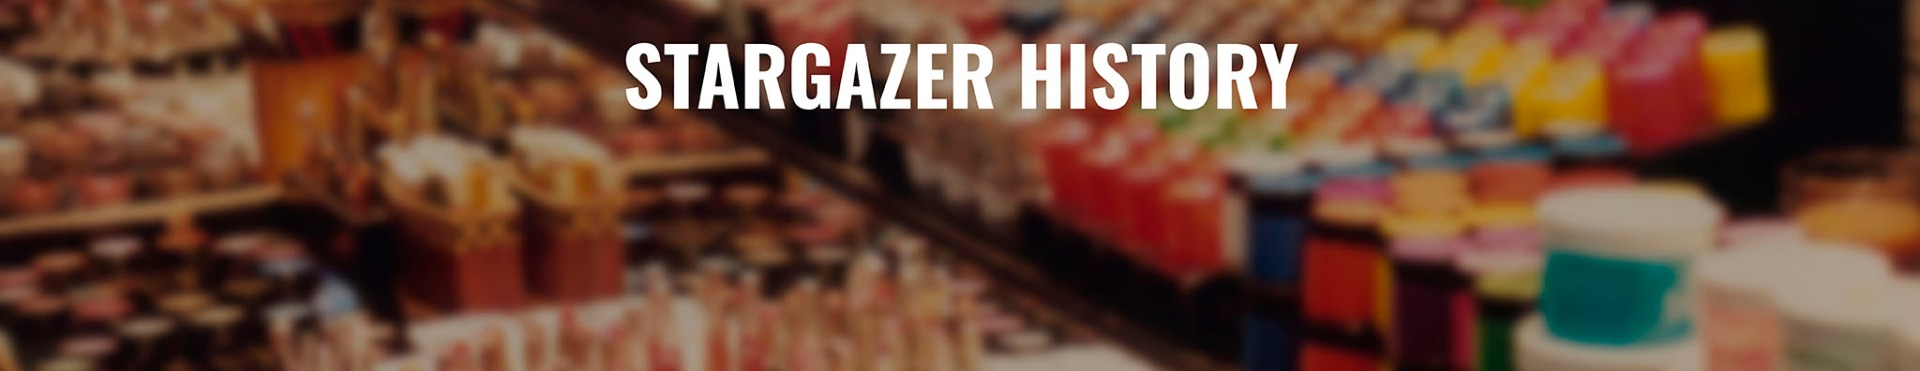 About Stargazer Products